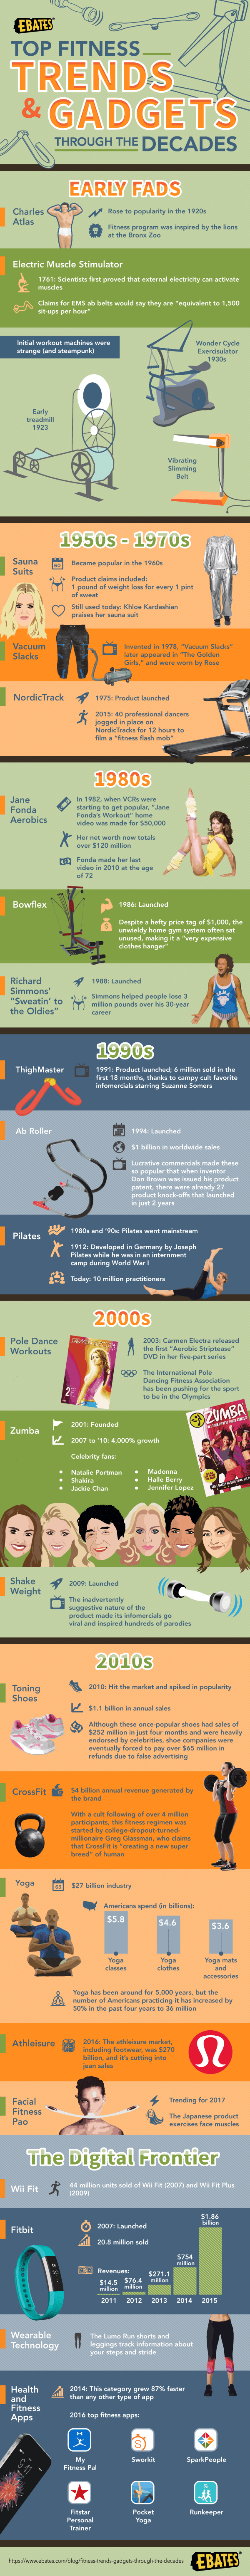 Top Fitness Trends and Gadgets Through the Decades